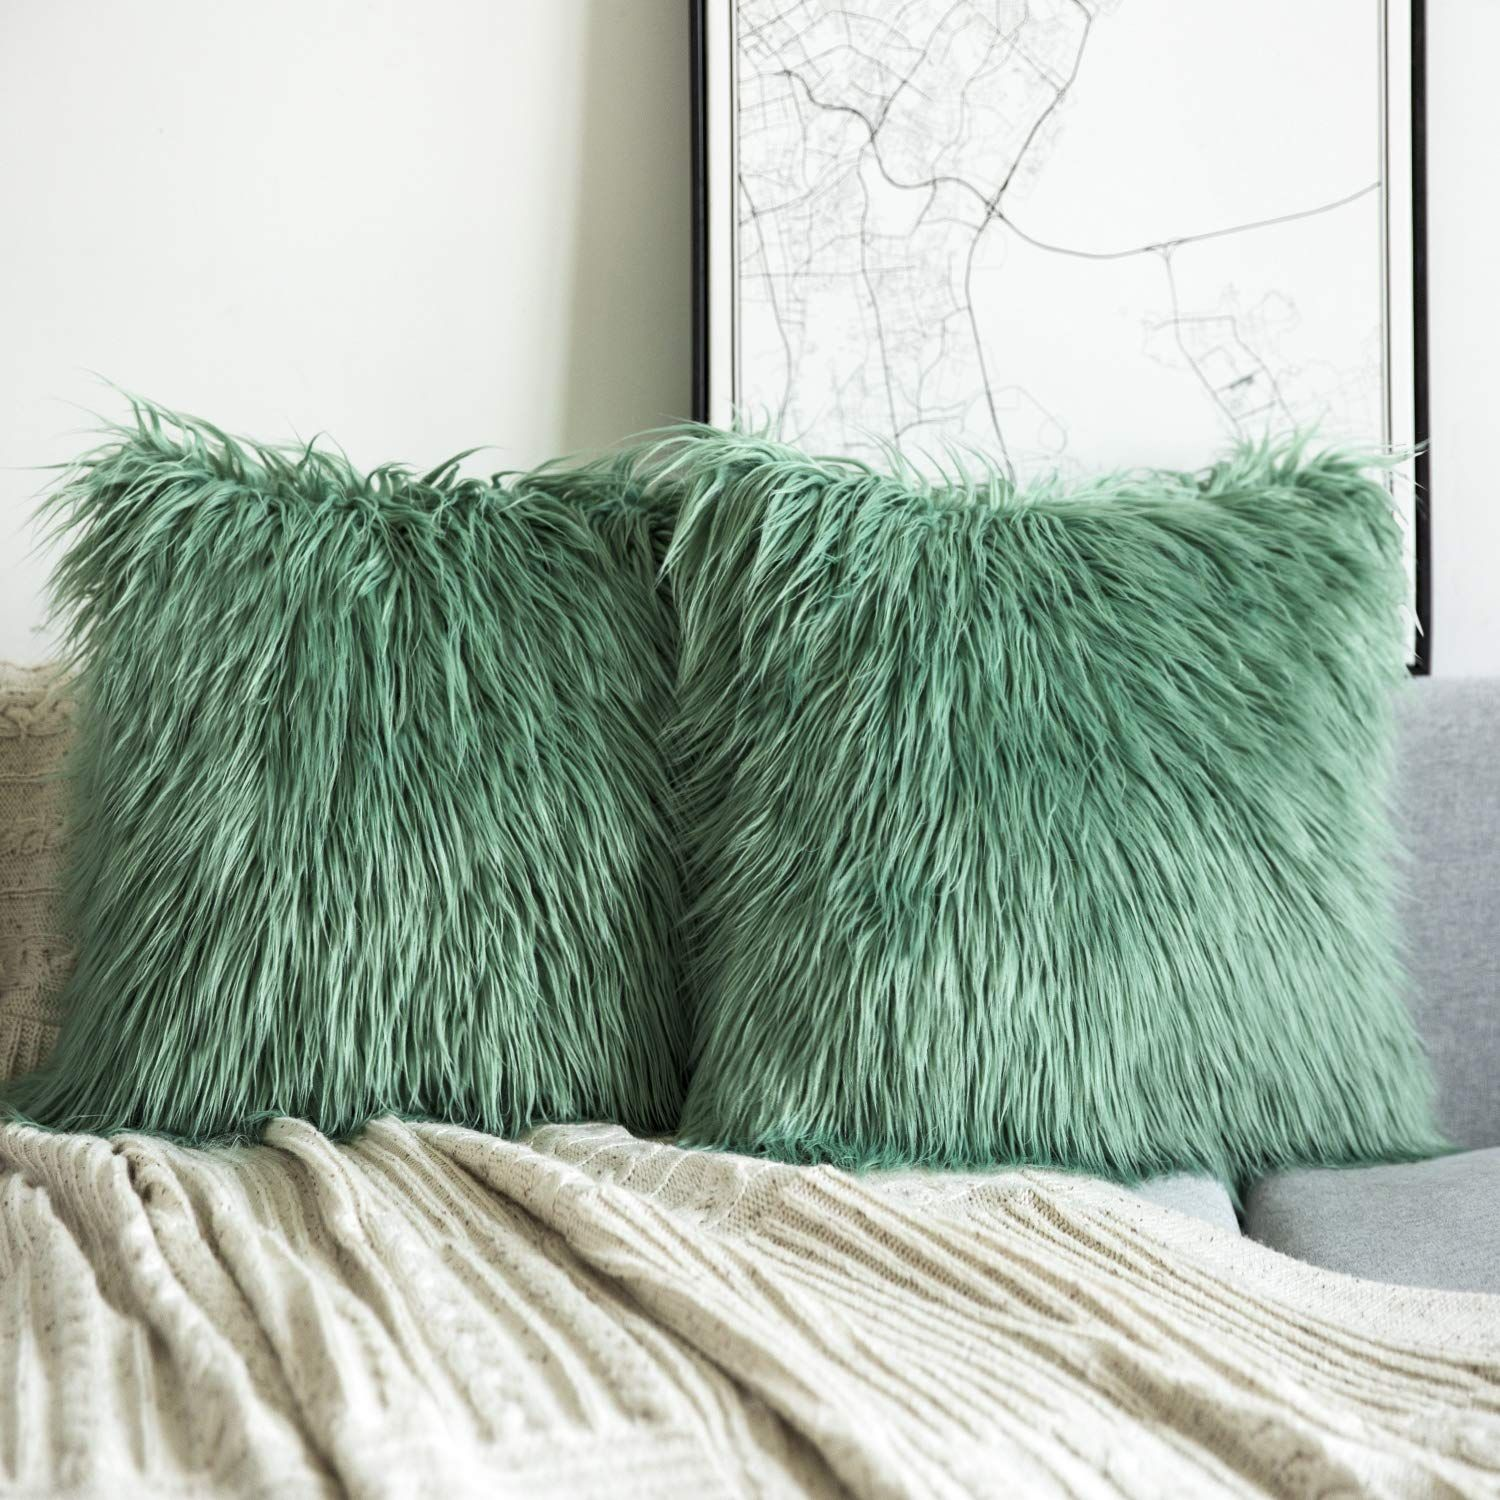 Home In 2020 Throw Pillows Green Throw Pillows Decorative